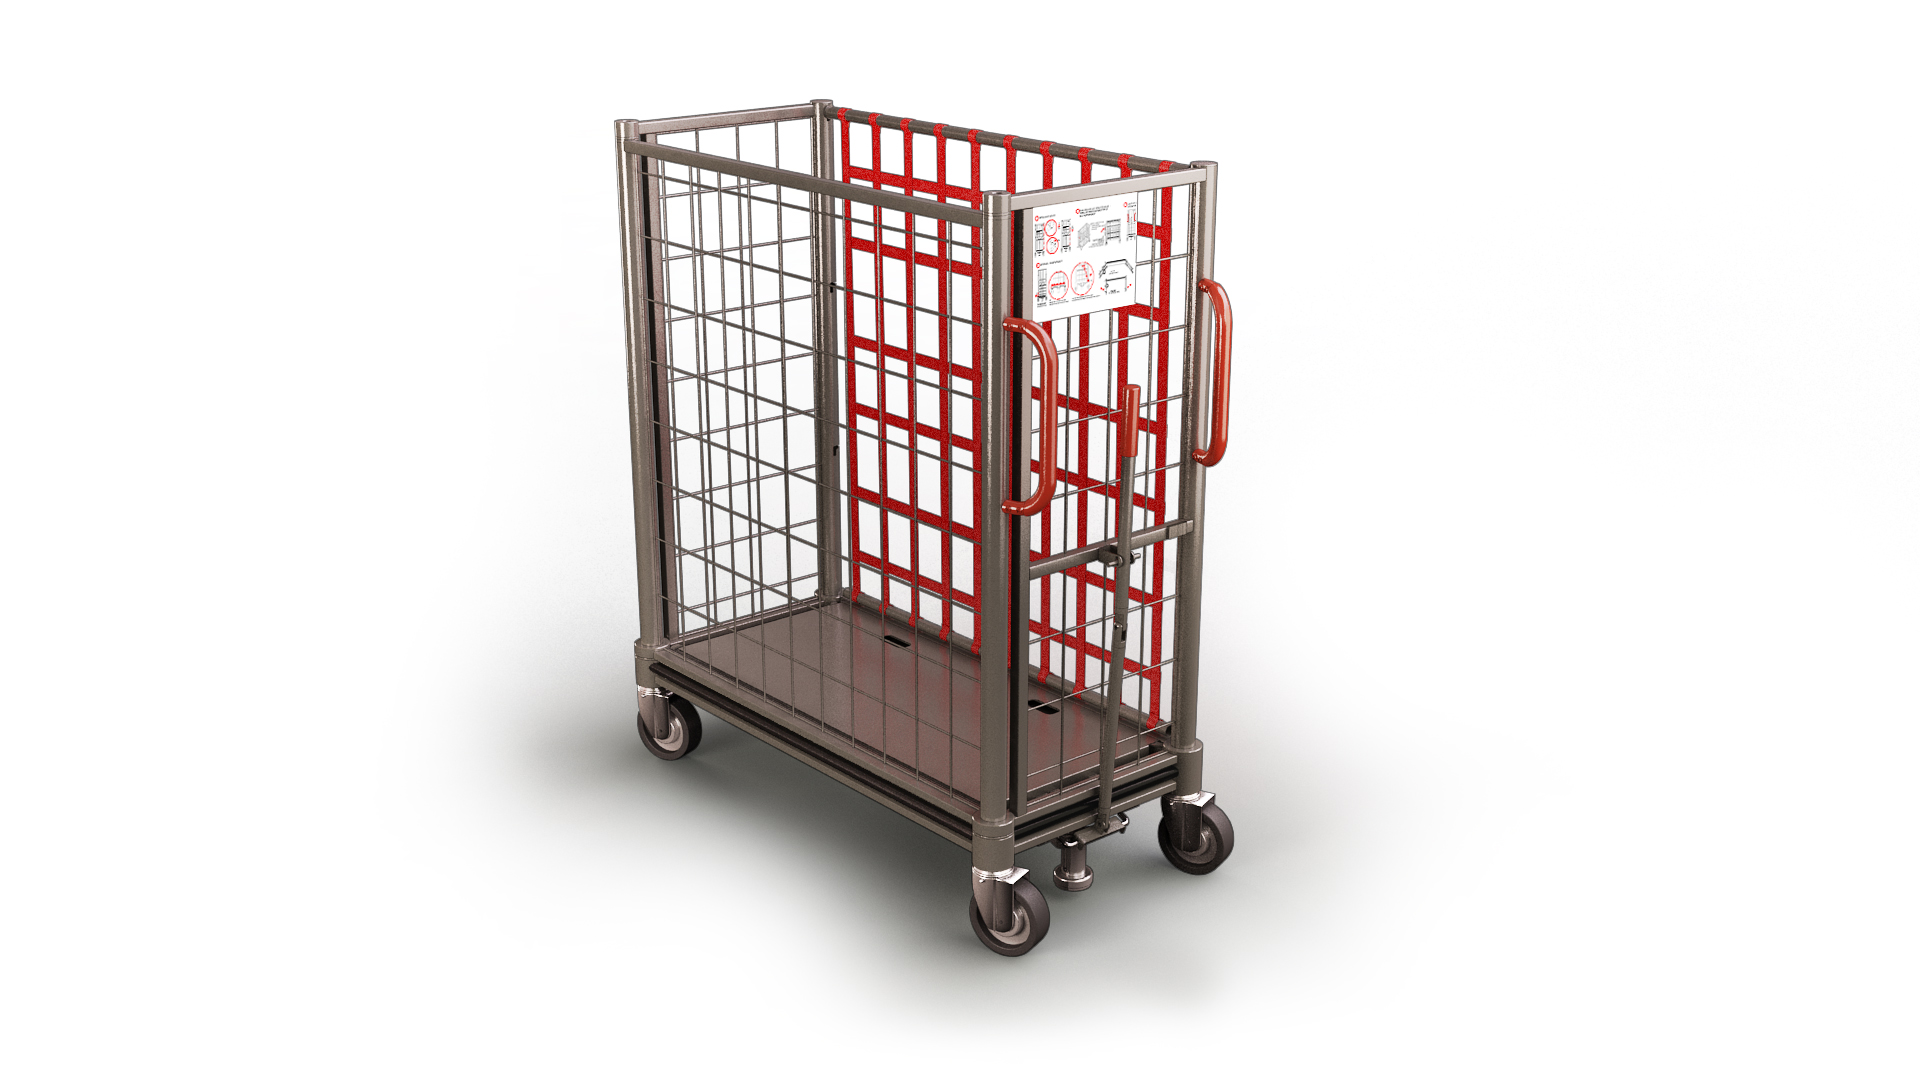 Index cfm furthermore Parcel Carts further Space view picture 3313 41522 moreover Dj Piet besides 3313. on 3313